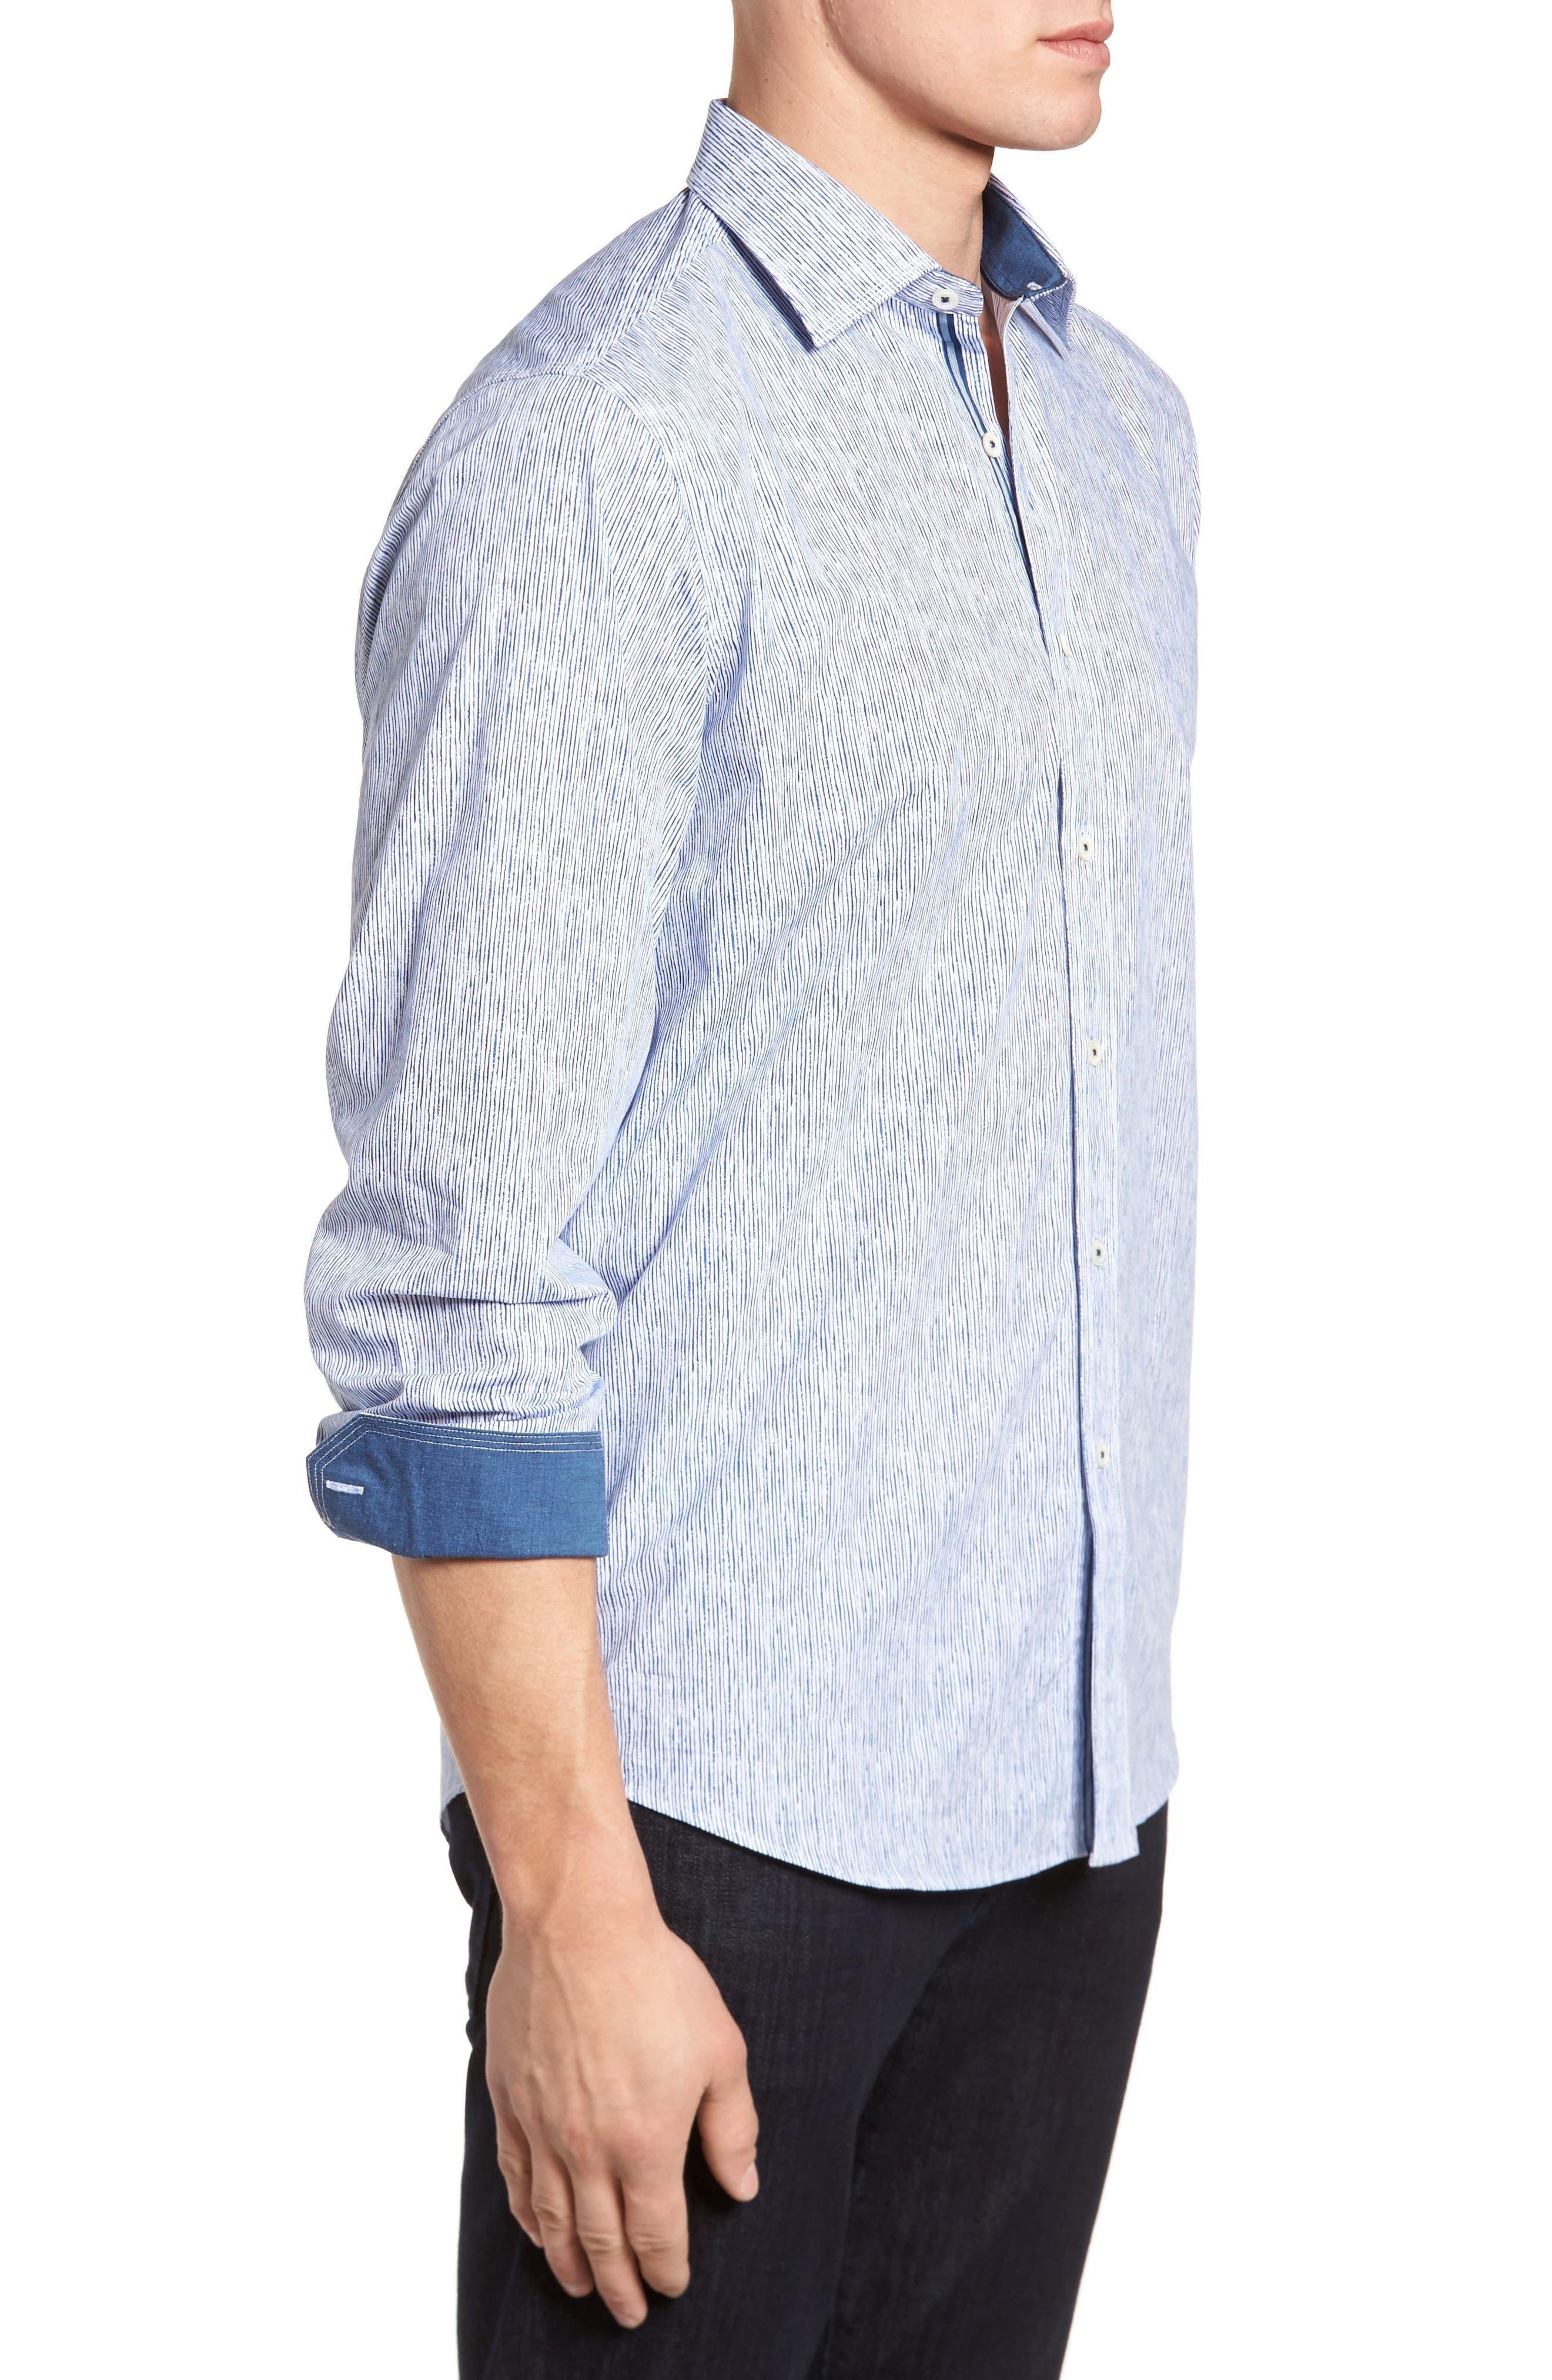 Freehand Pin Lines Classic Fit Sport Shirt,                             Alternate thumbnail 3, color,                             Classic Blue